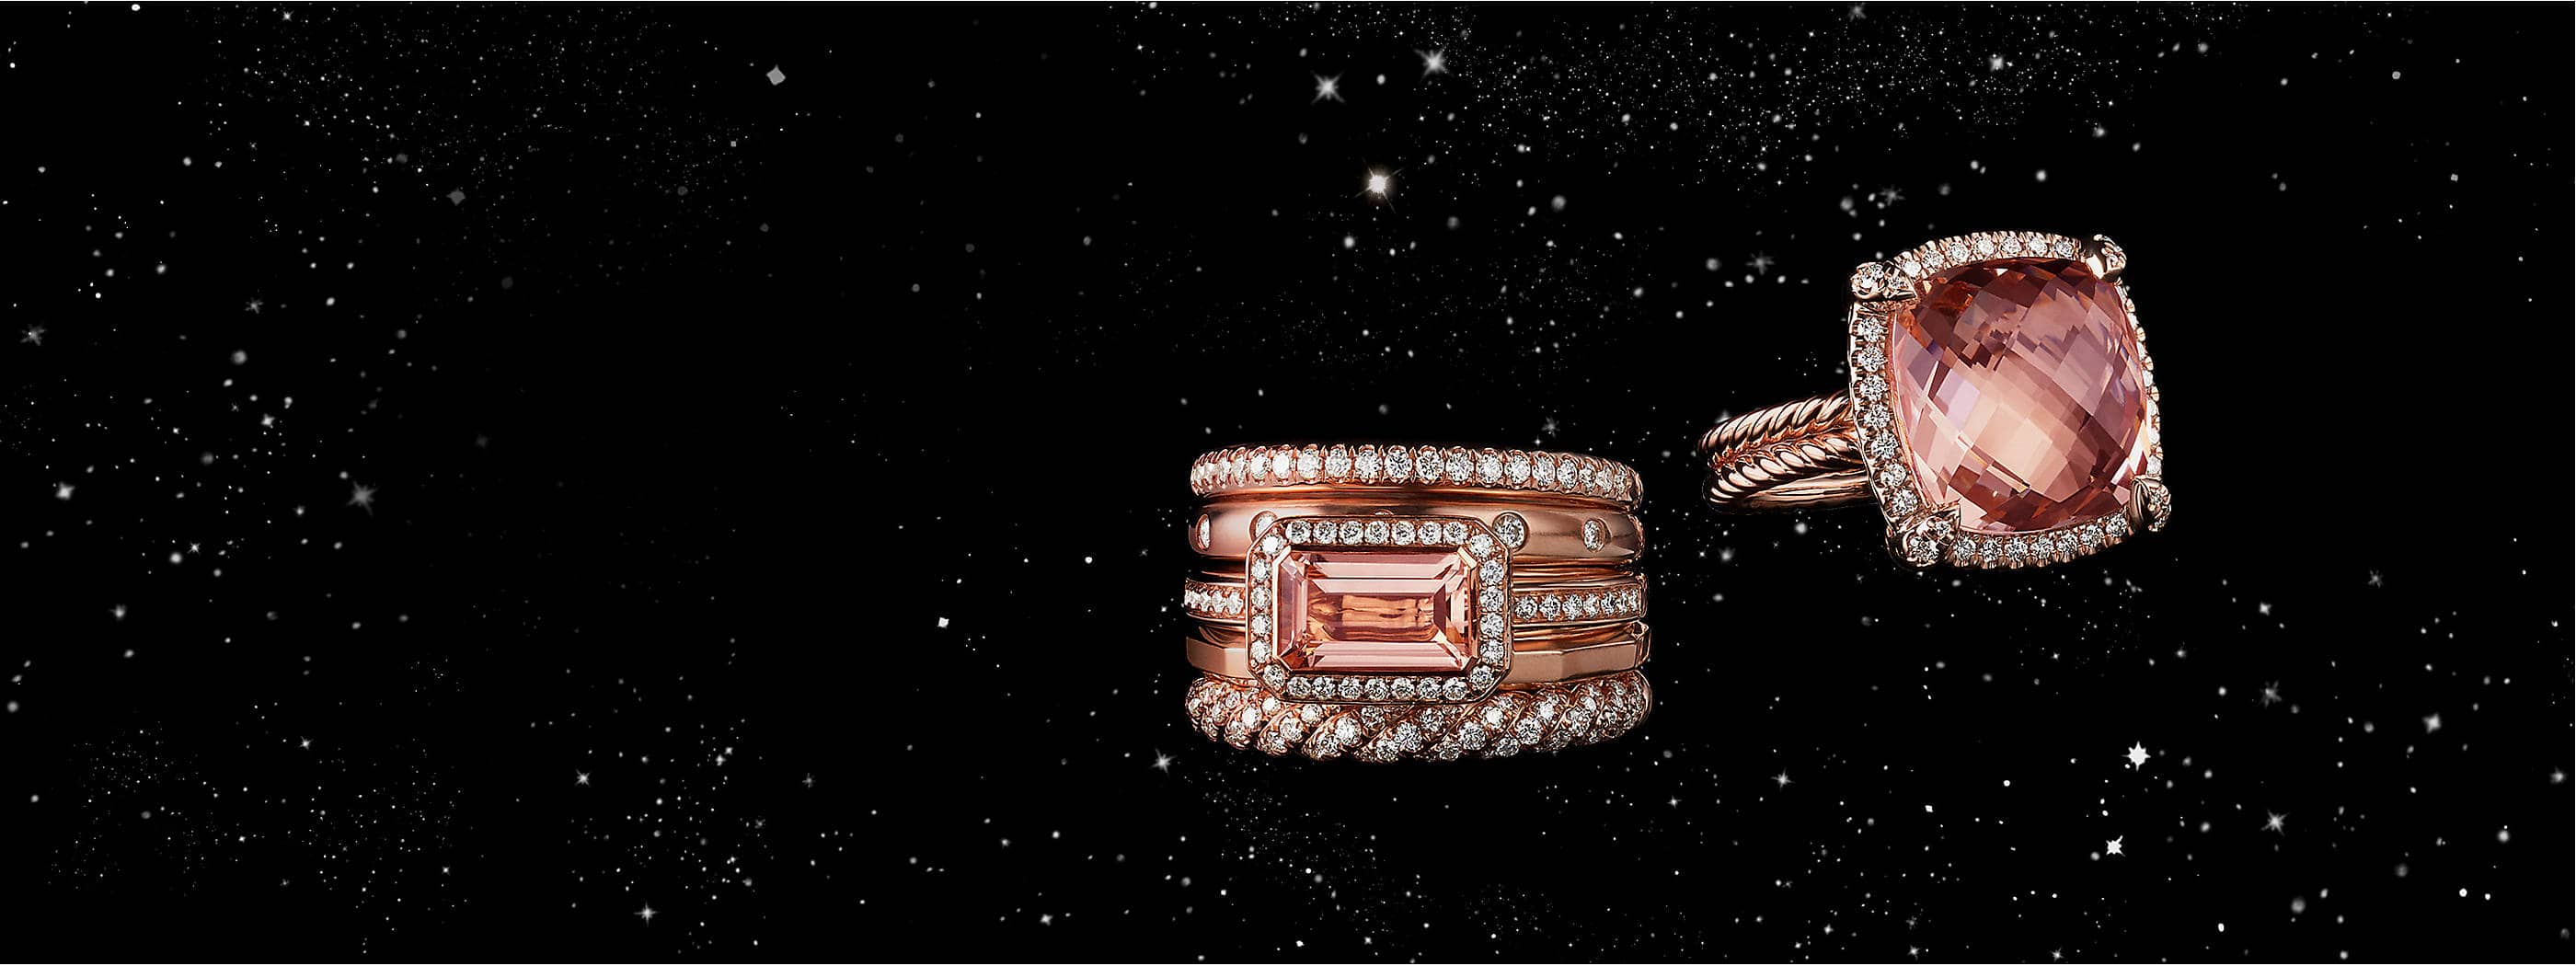 A color photograph shows a David Yurman Stax five-row ring and a Châtelaine ring floating in front of a starry night sky. The women's rings are crafted from 18K rose gold with pavé diamonds surrounding morganite center stones.